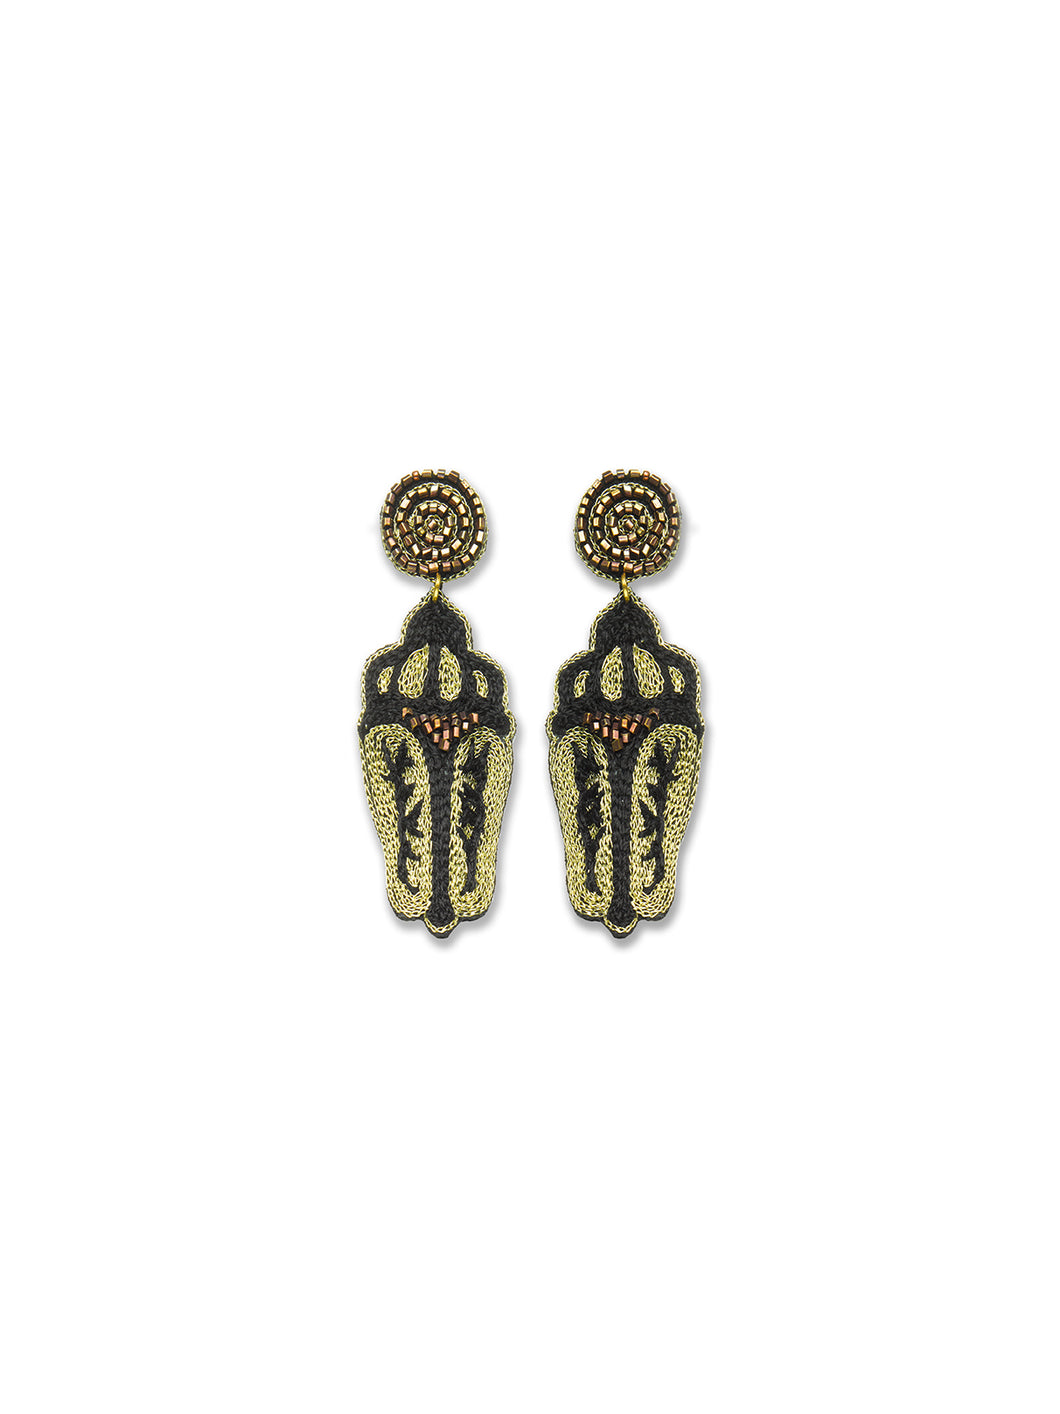 Black & Gold Scarab Beetle Earrings